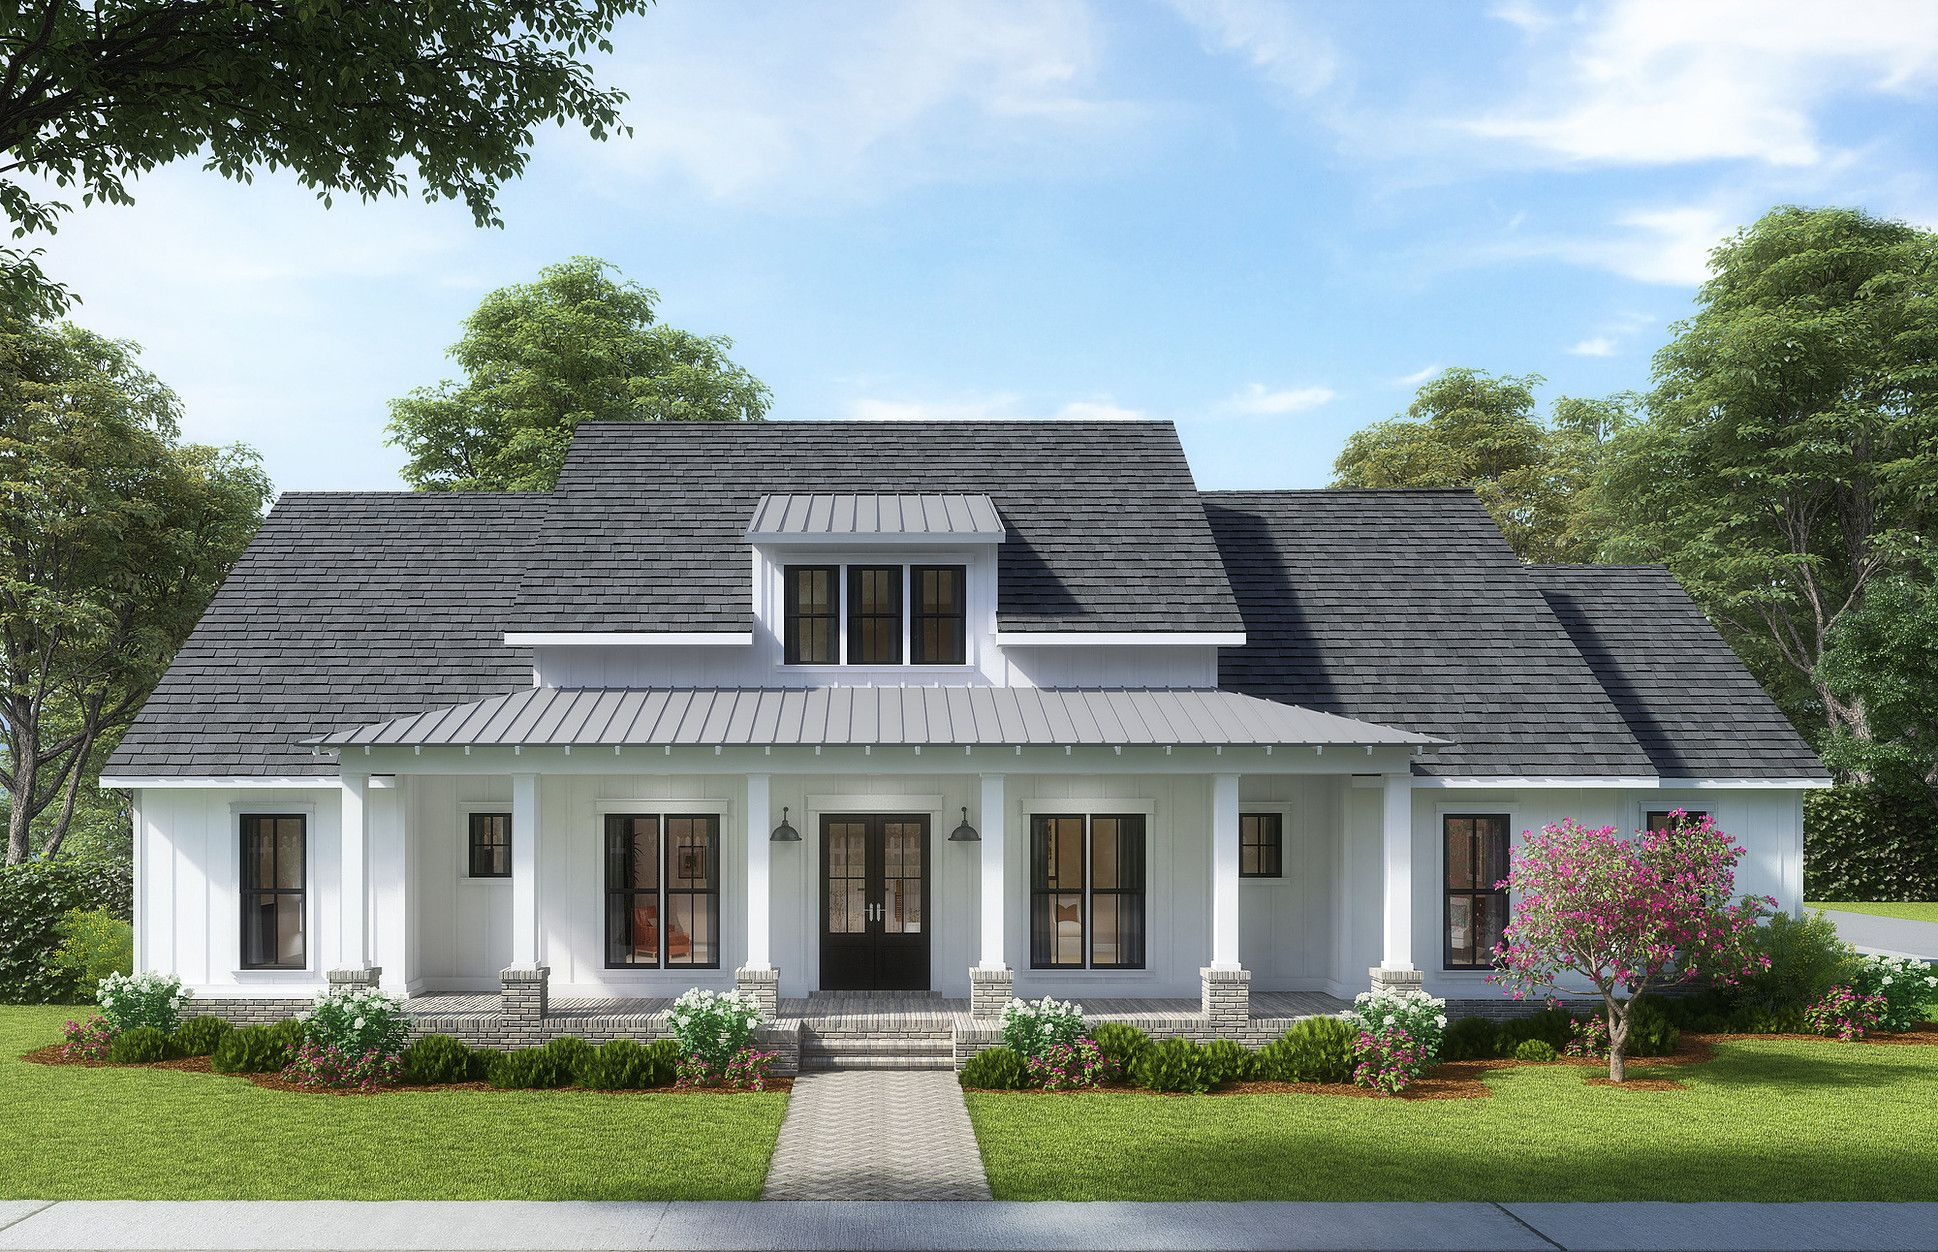 Madden Home Design The Whistlewood Farmhouse Modern Farmhouse Plans Farmhouse Plans Madden Home Design